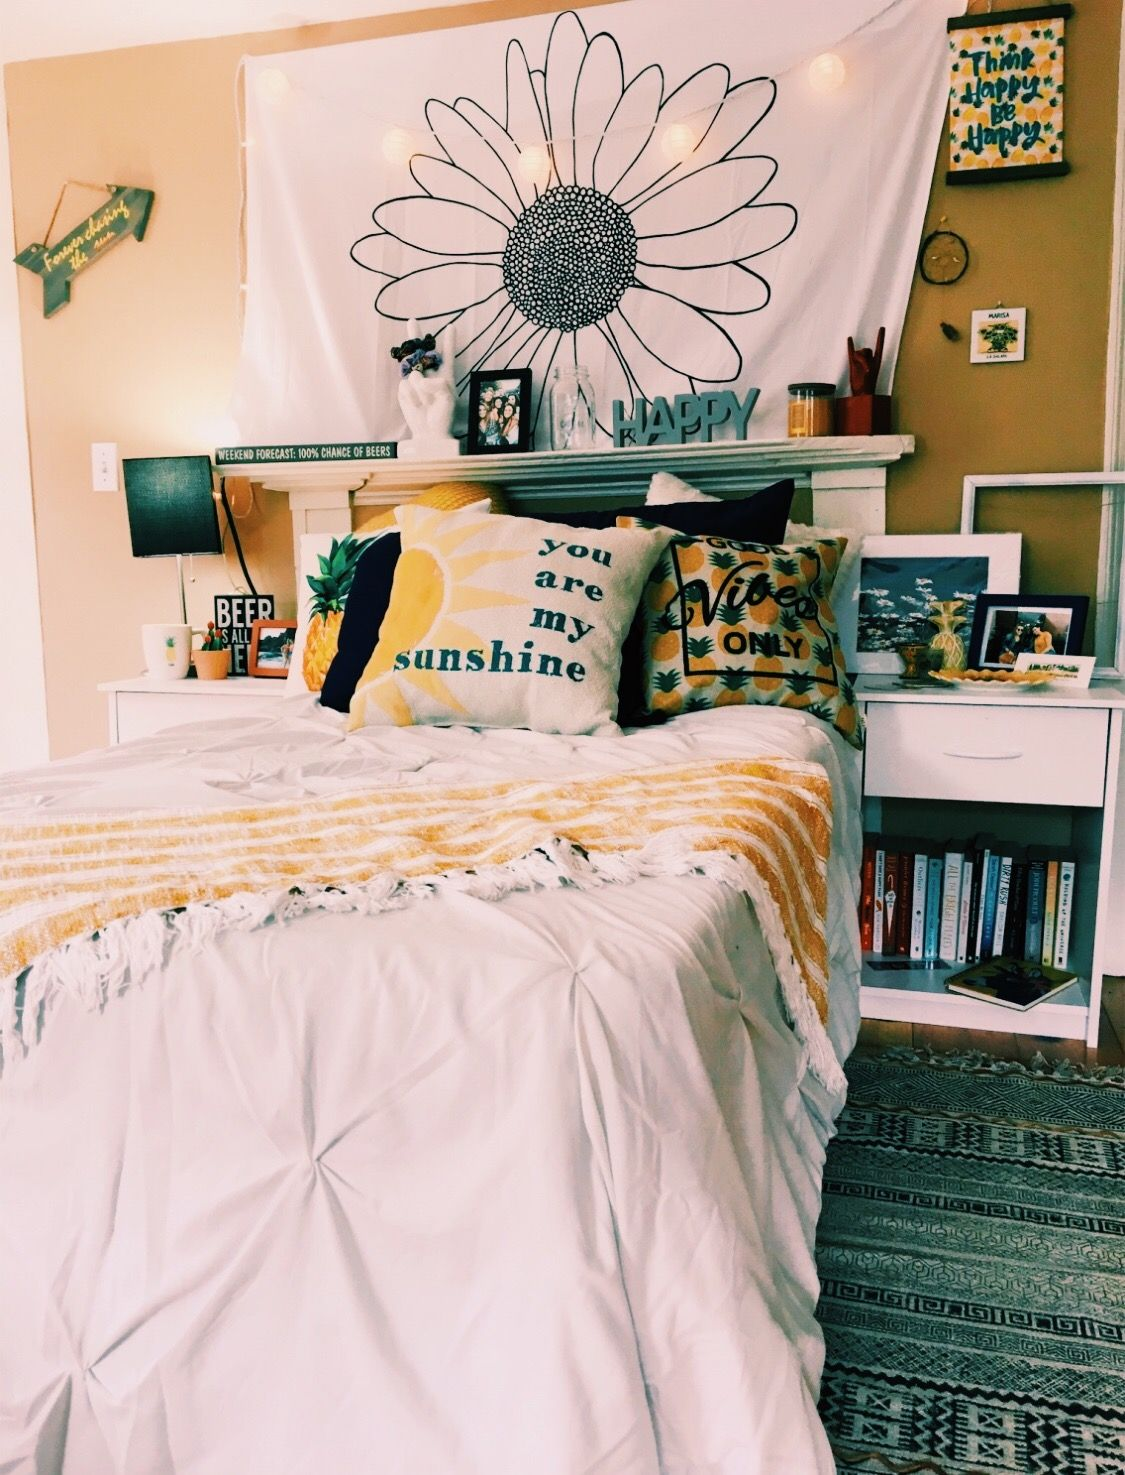 Aesthetic Dorm Room: Snap And Pinterest @yessi7374💛